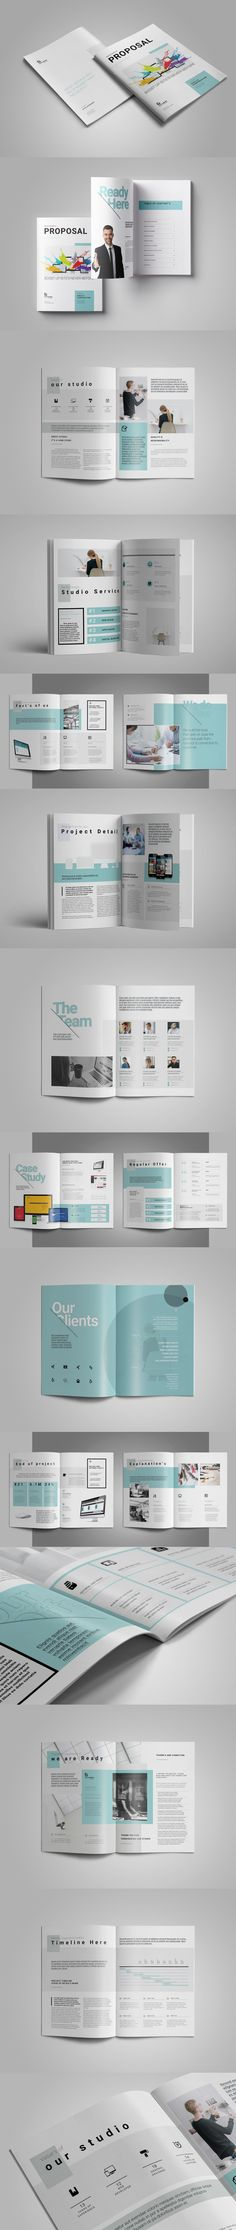 Annual Report 2017 InDesign Template Annual reports, Letter size - indesign invoice template